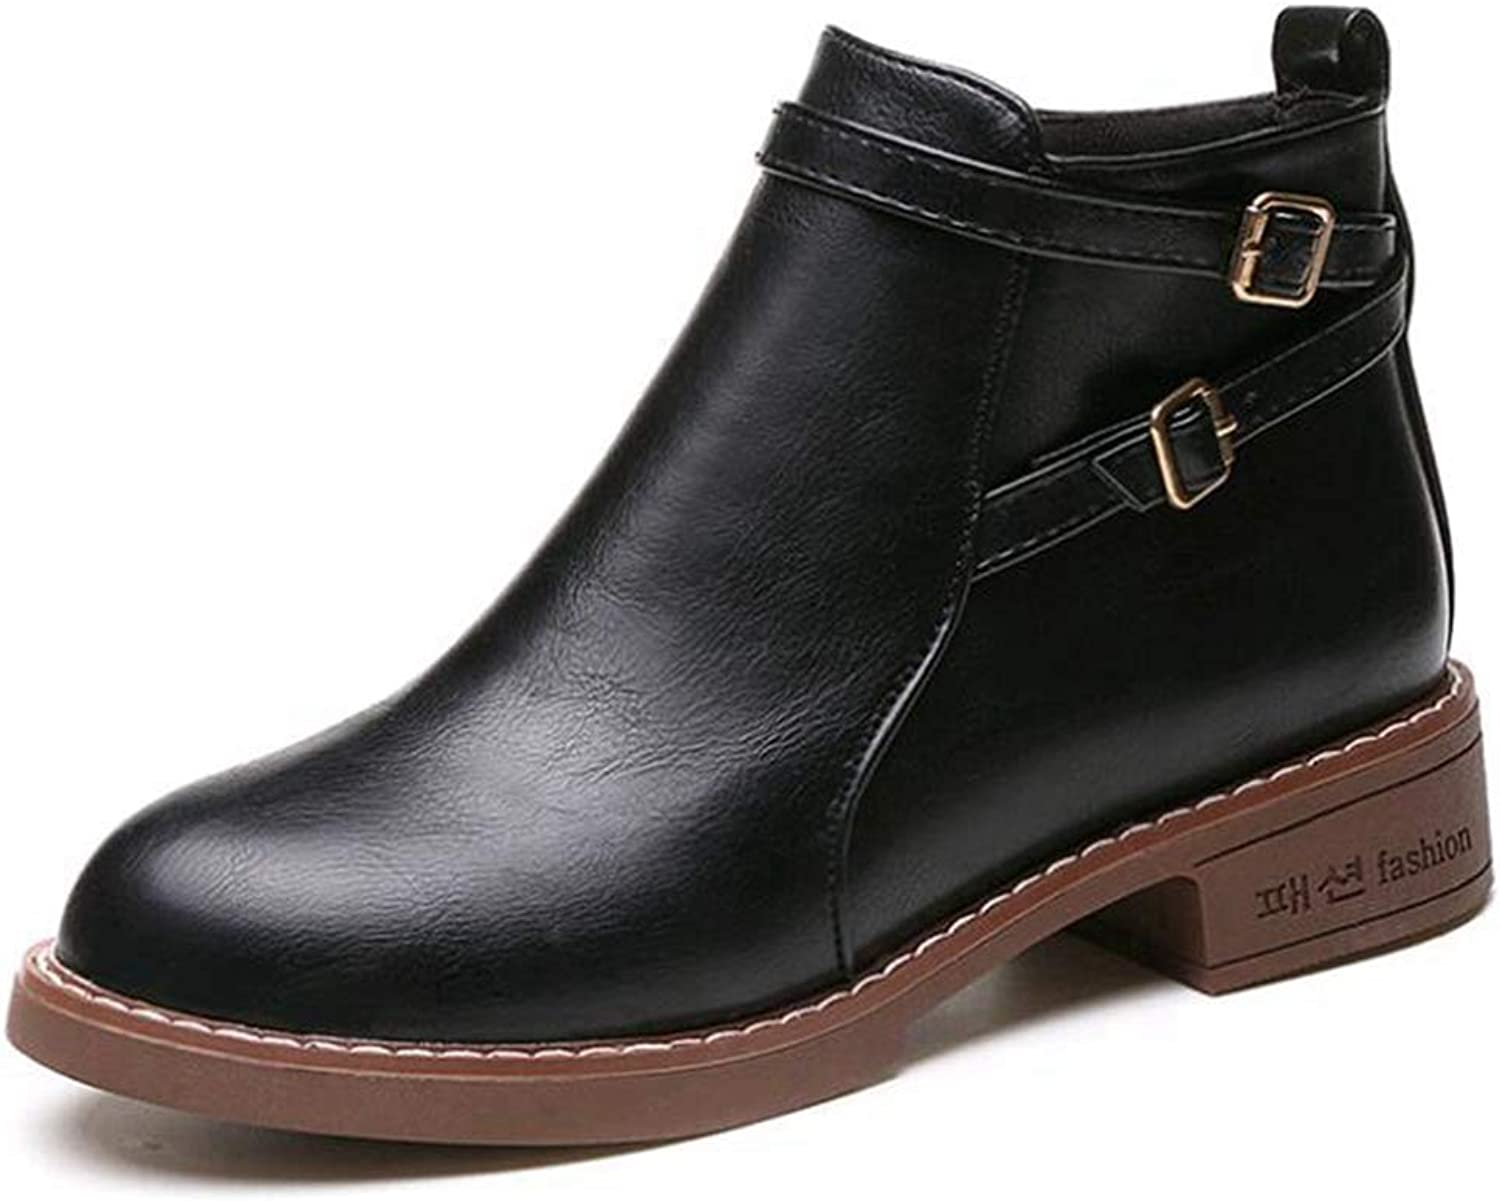 Ankle Boots Flats Round Toe Back Zip Martin Boots PU Leather Woman shoes